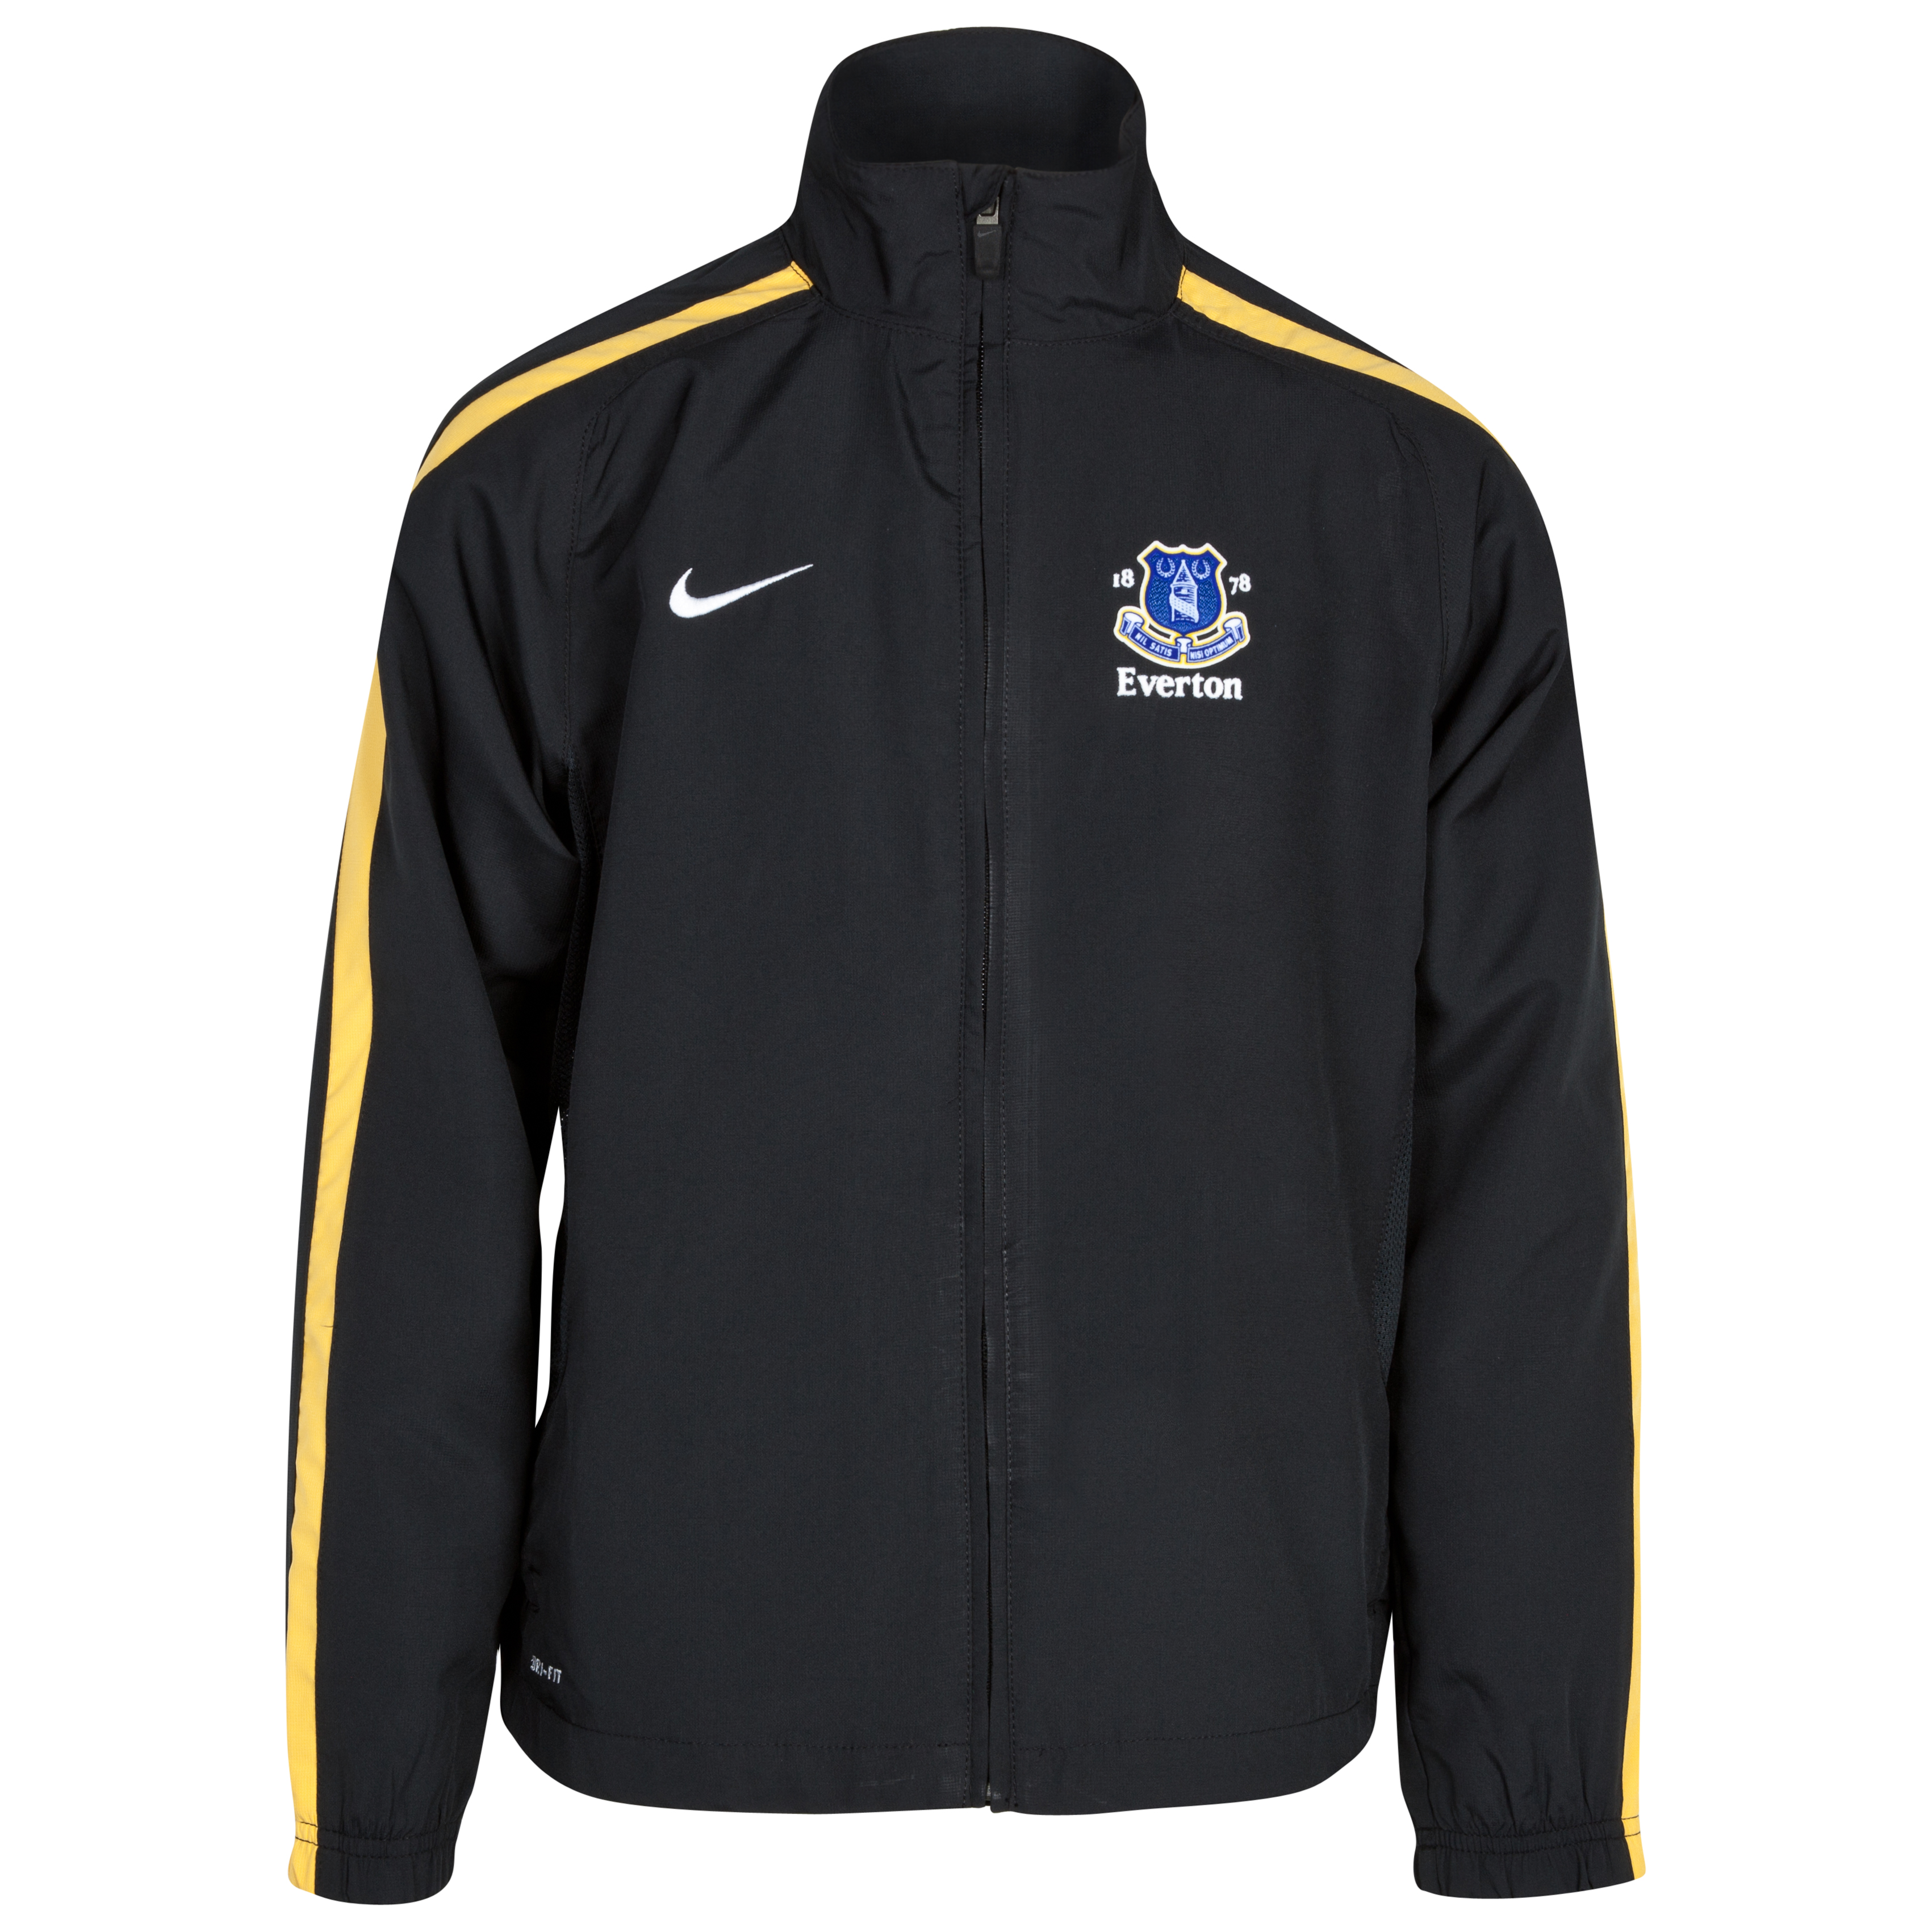 Everton Woven Warm Up Jacket - Black/Varsity Maize/White